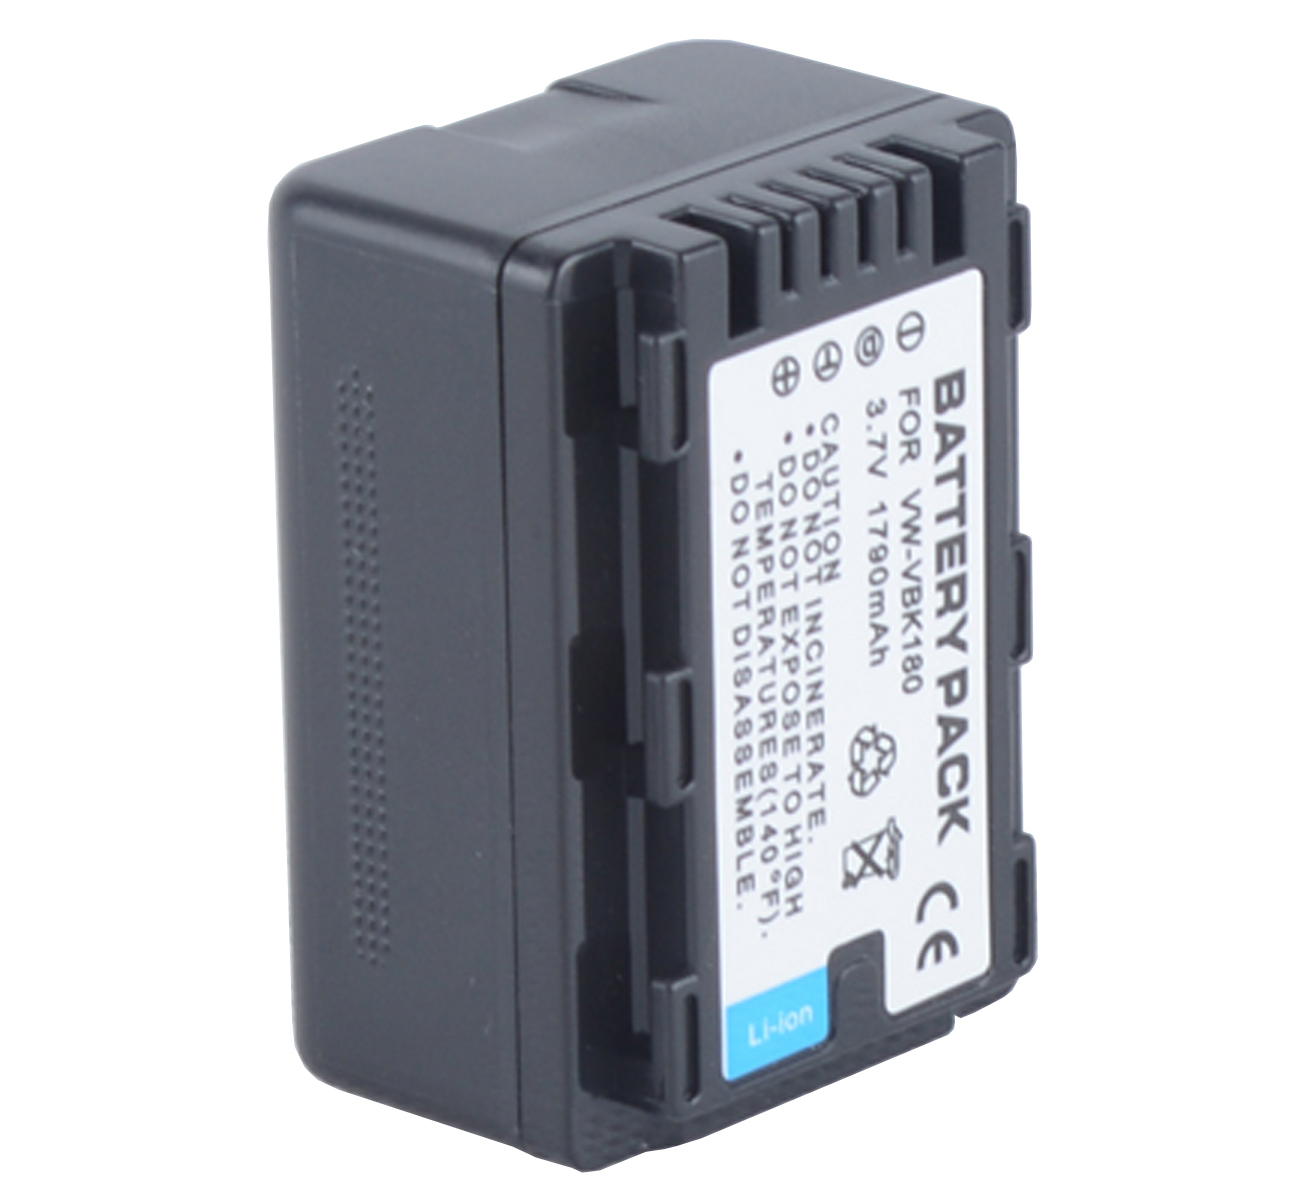 Battery Charger for Panasonic HDC-TM60 HDC-TM99 Full HD Camcorder HDC-TM80 HDC-TM90